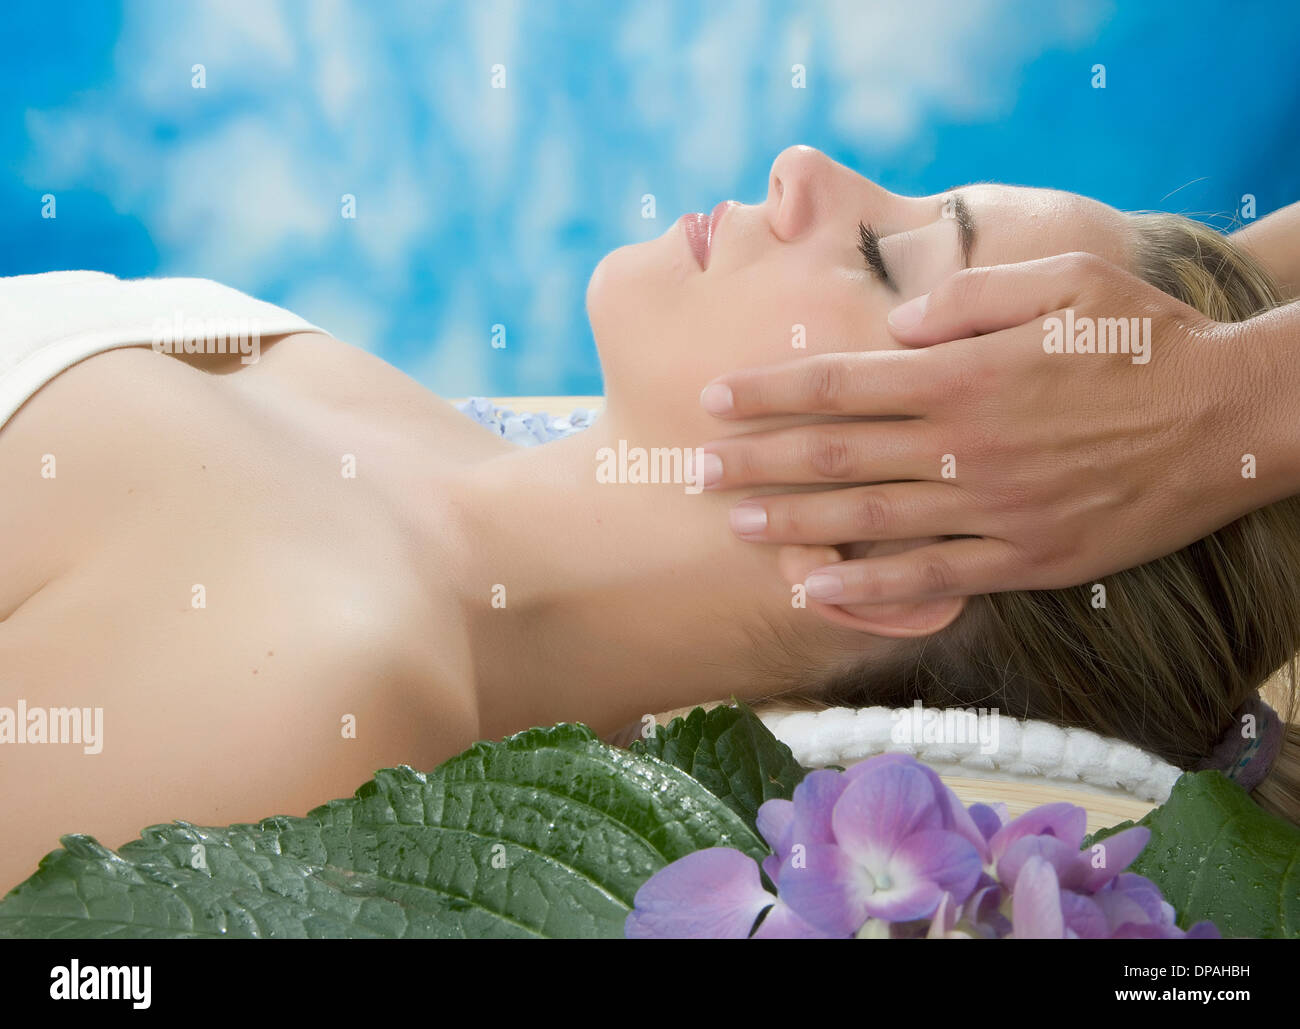 Side view of woman having head massage - Stock Image